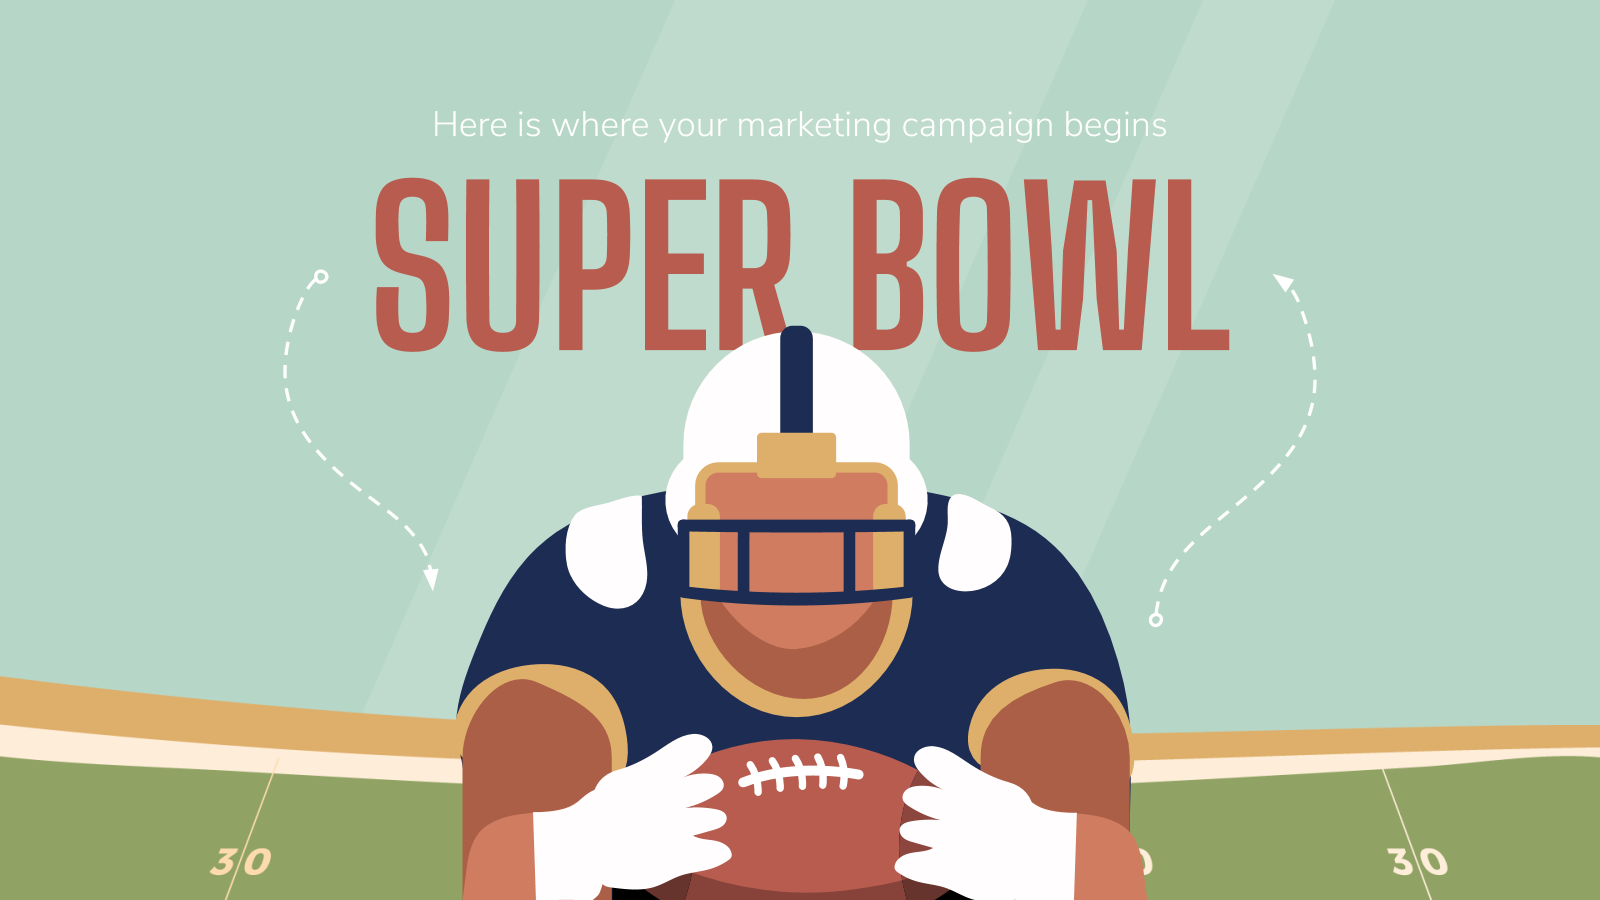 Campagne marketing du Super Bowl : Modèles de présentation